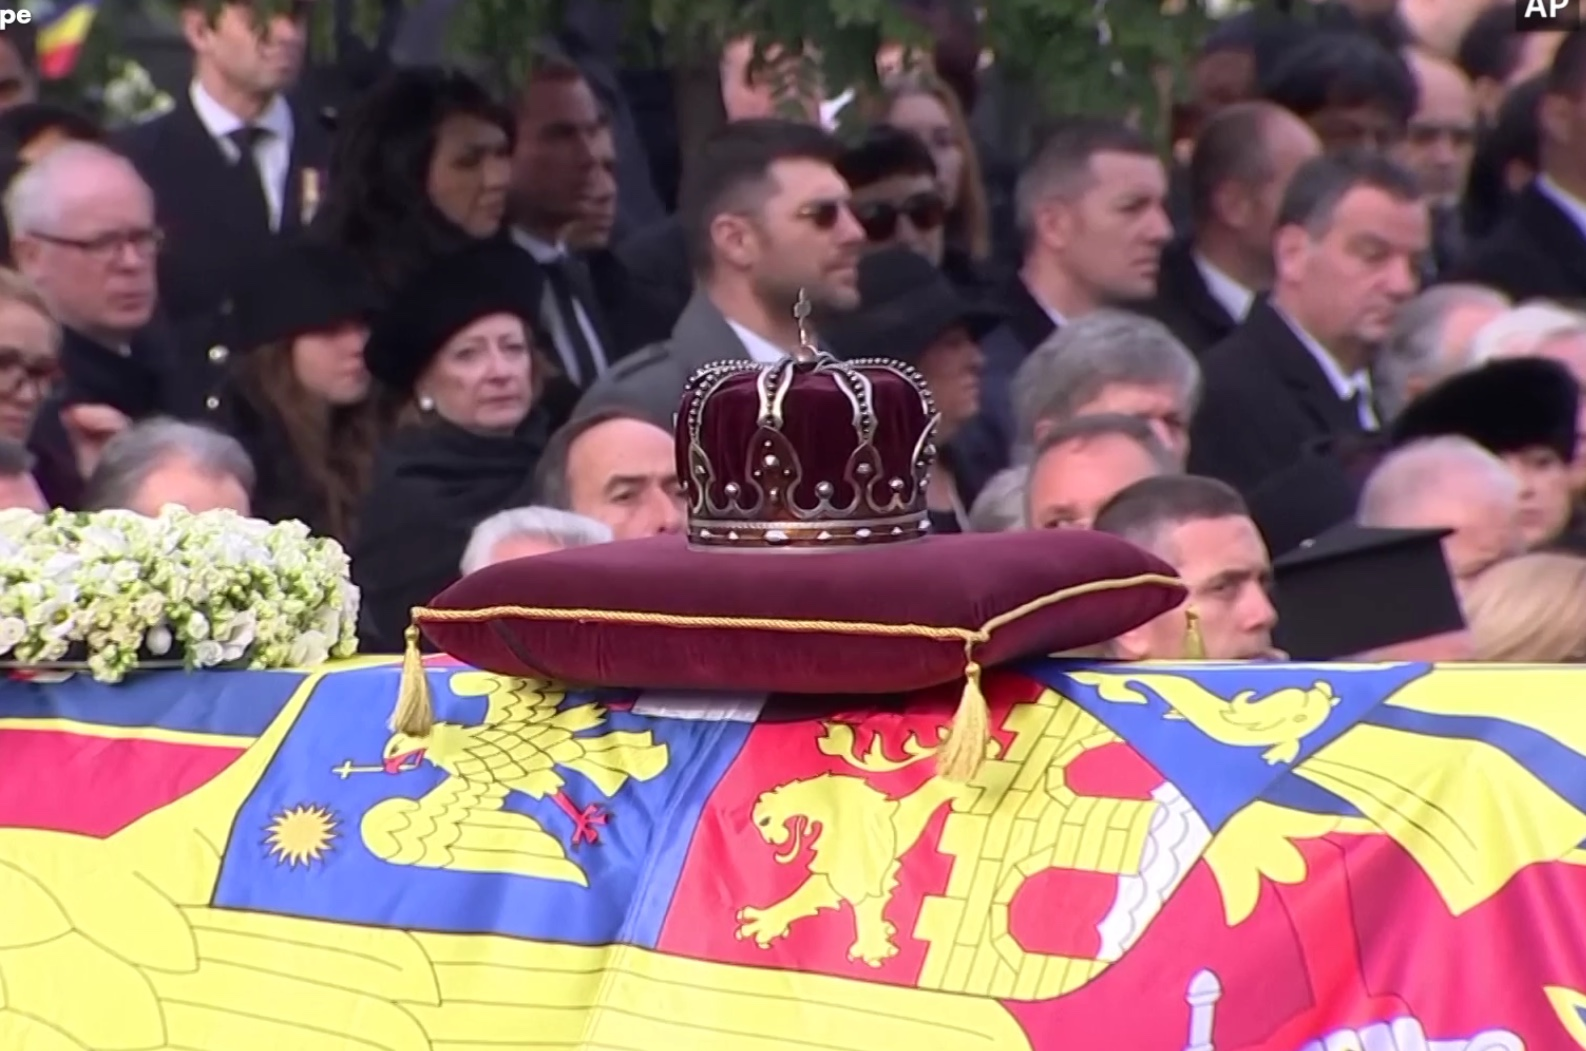 """The """"Steel Crown"""" of the King of Romania rests upon the catafalque during the funeral ceremonies in Bucharest."""